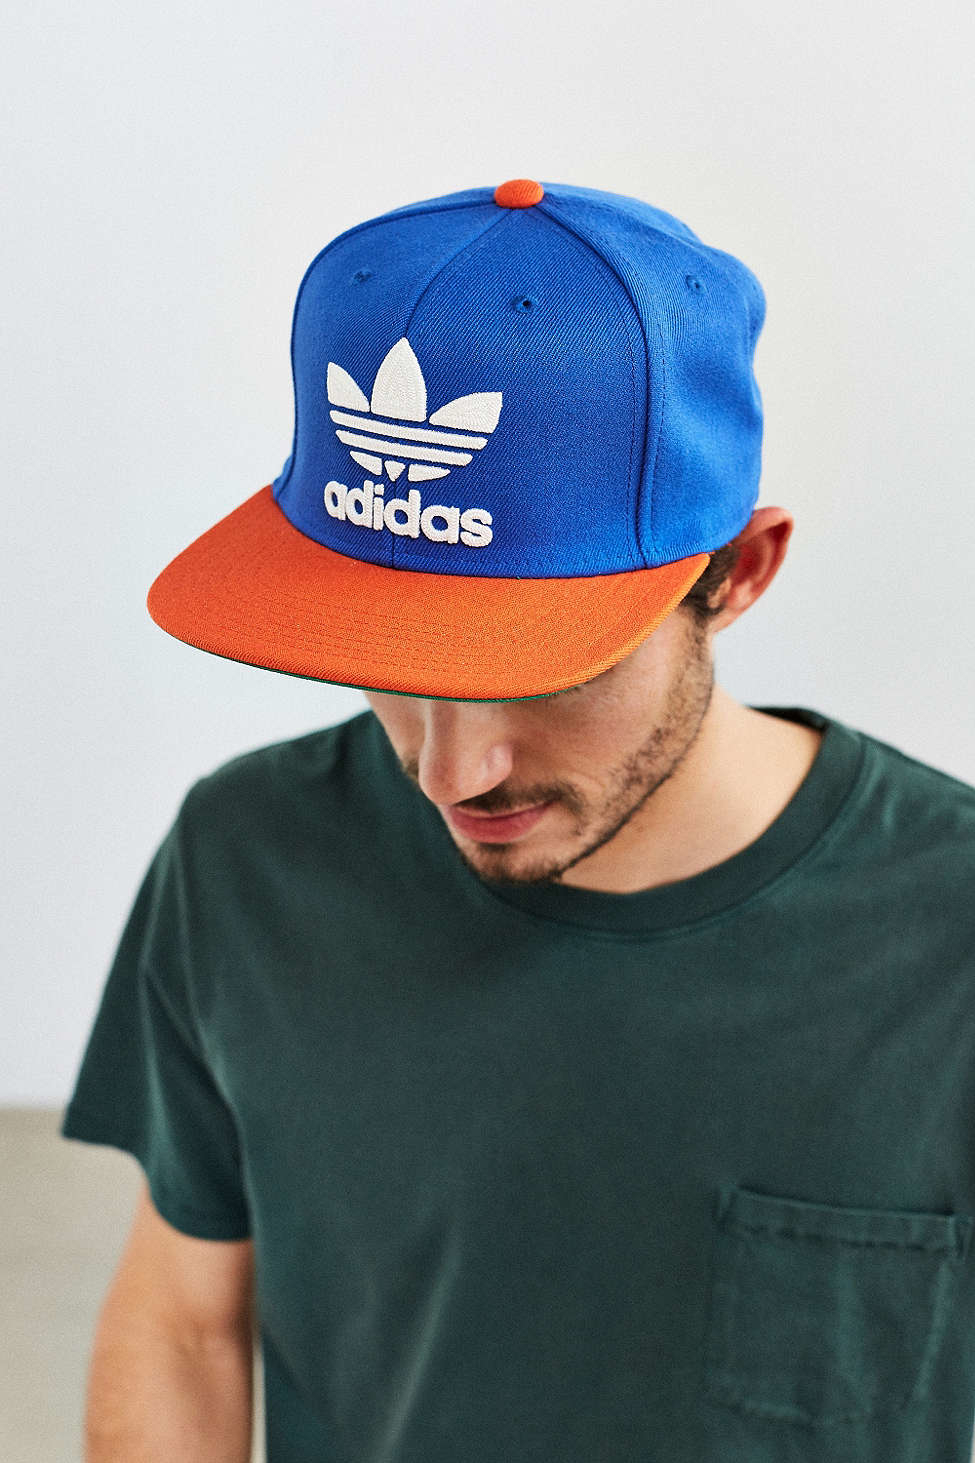 Lyst - adidas Originals Trefoil Snapback Hat in Blue for Men 68629eed8f7